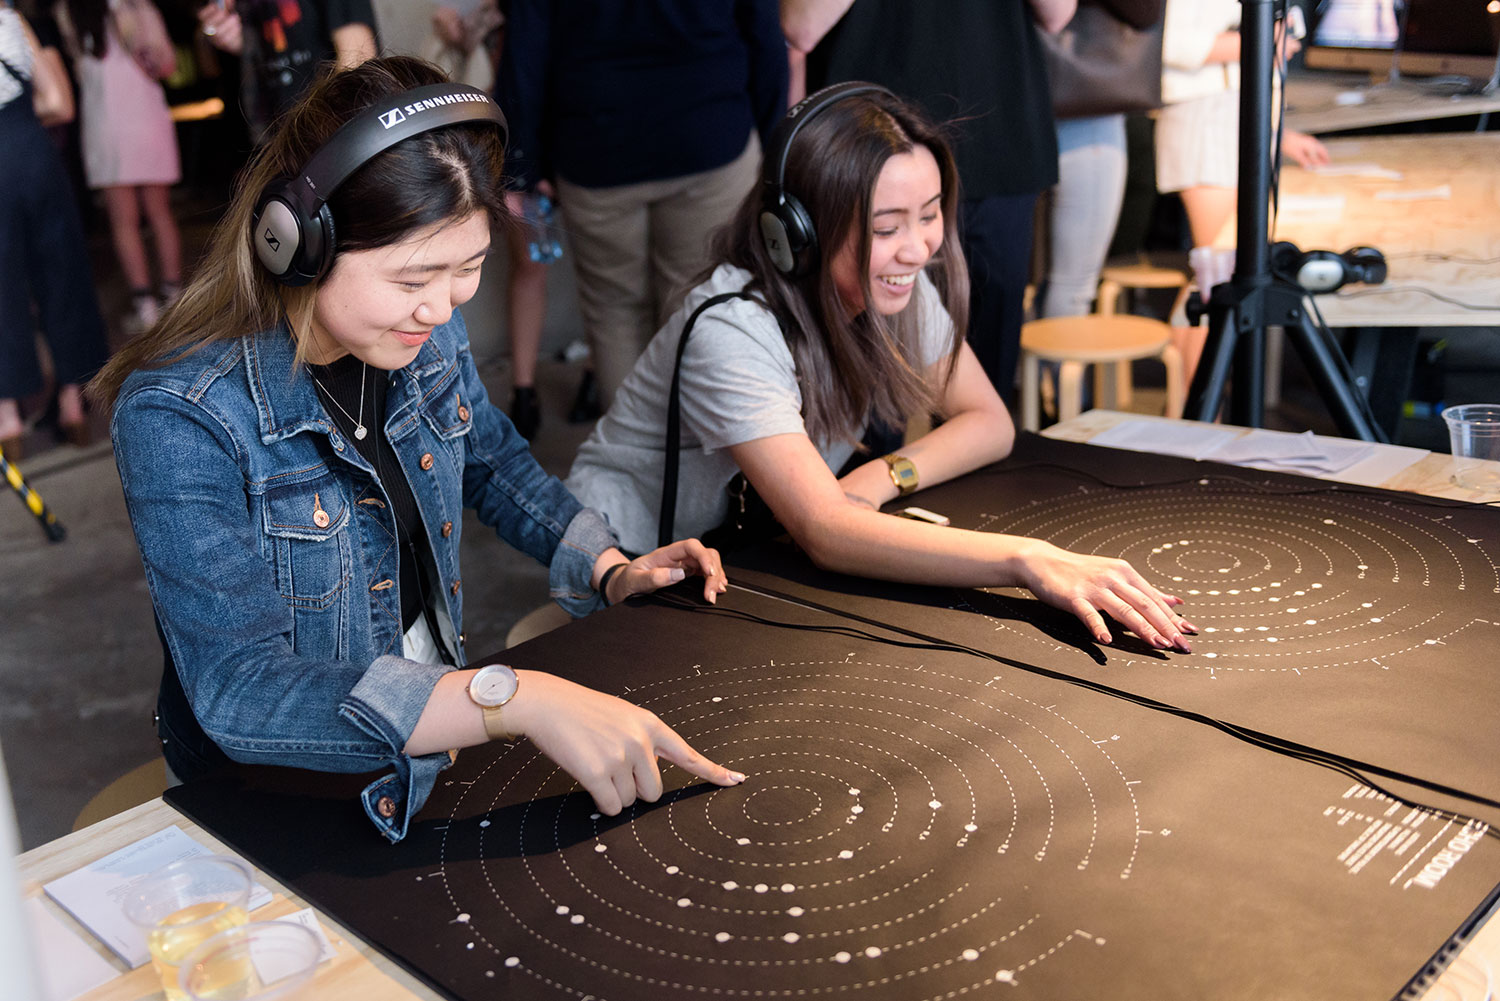 2 woman with headphones enjoy an interactive artwork